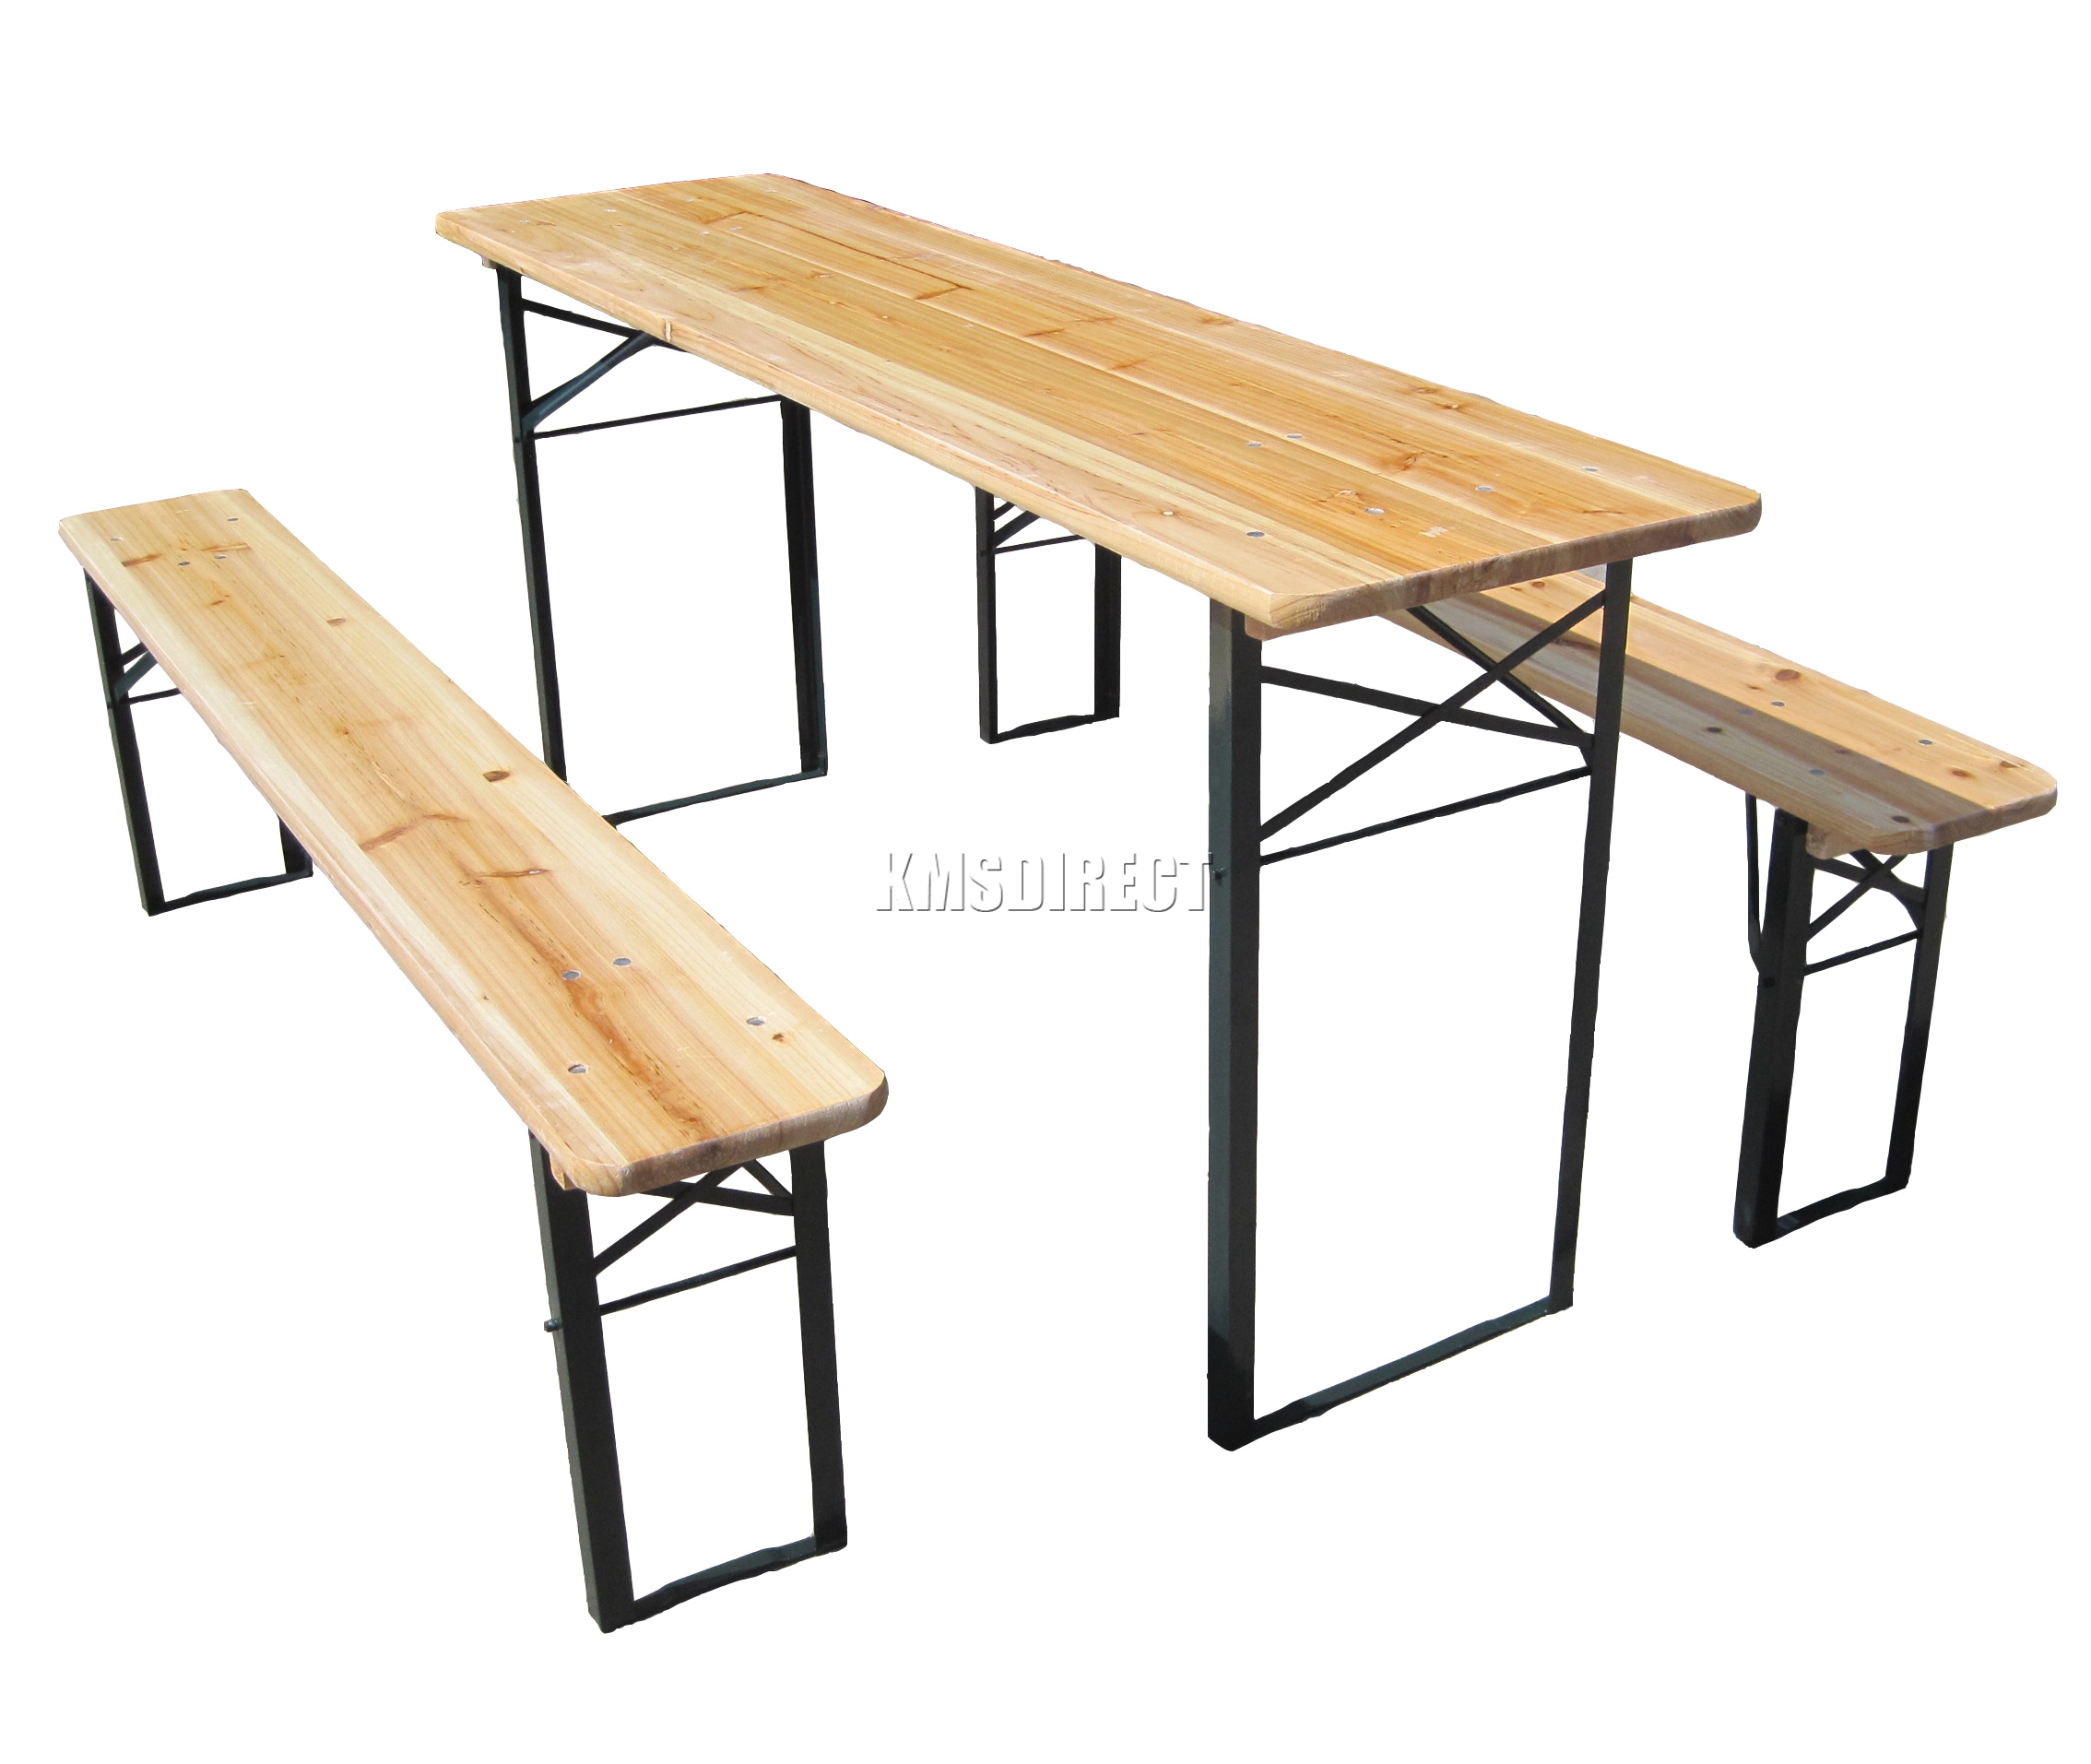 Wooden Folding Beer Table Bench Set Trestle Party Pub Garden